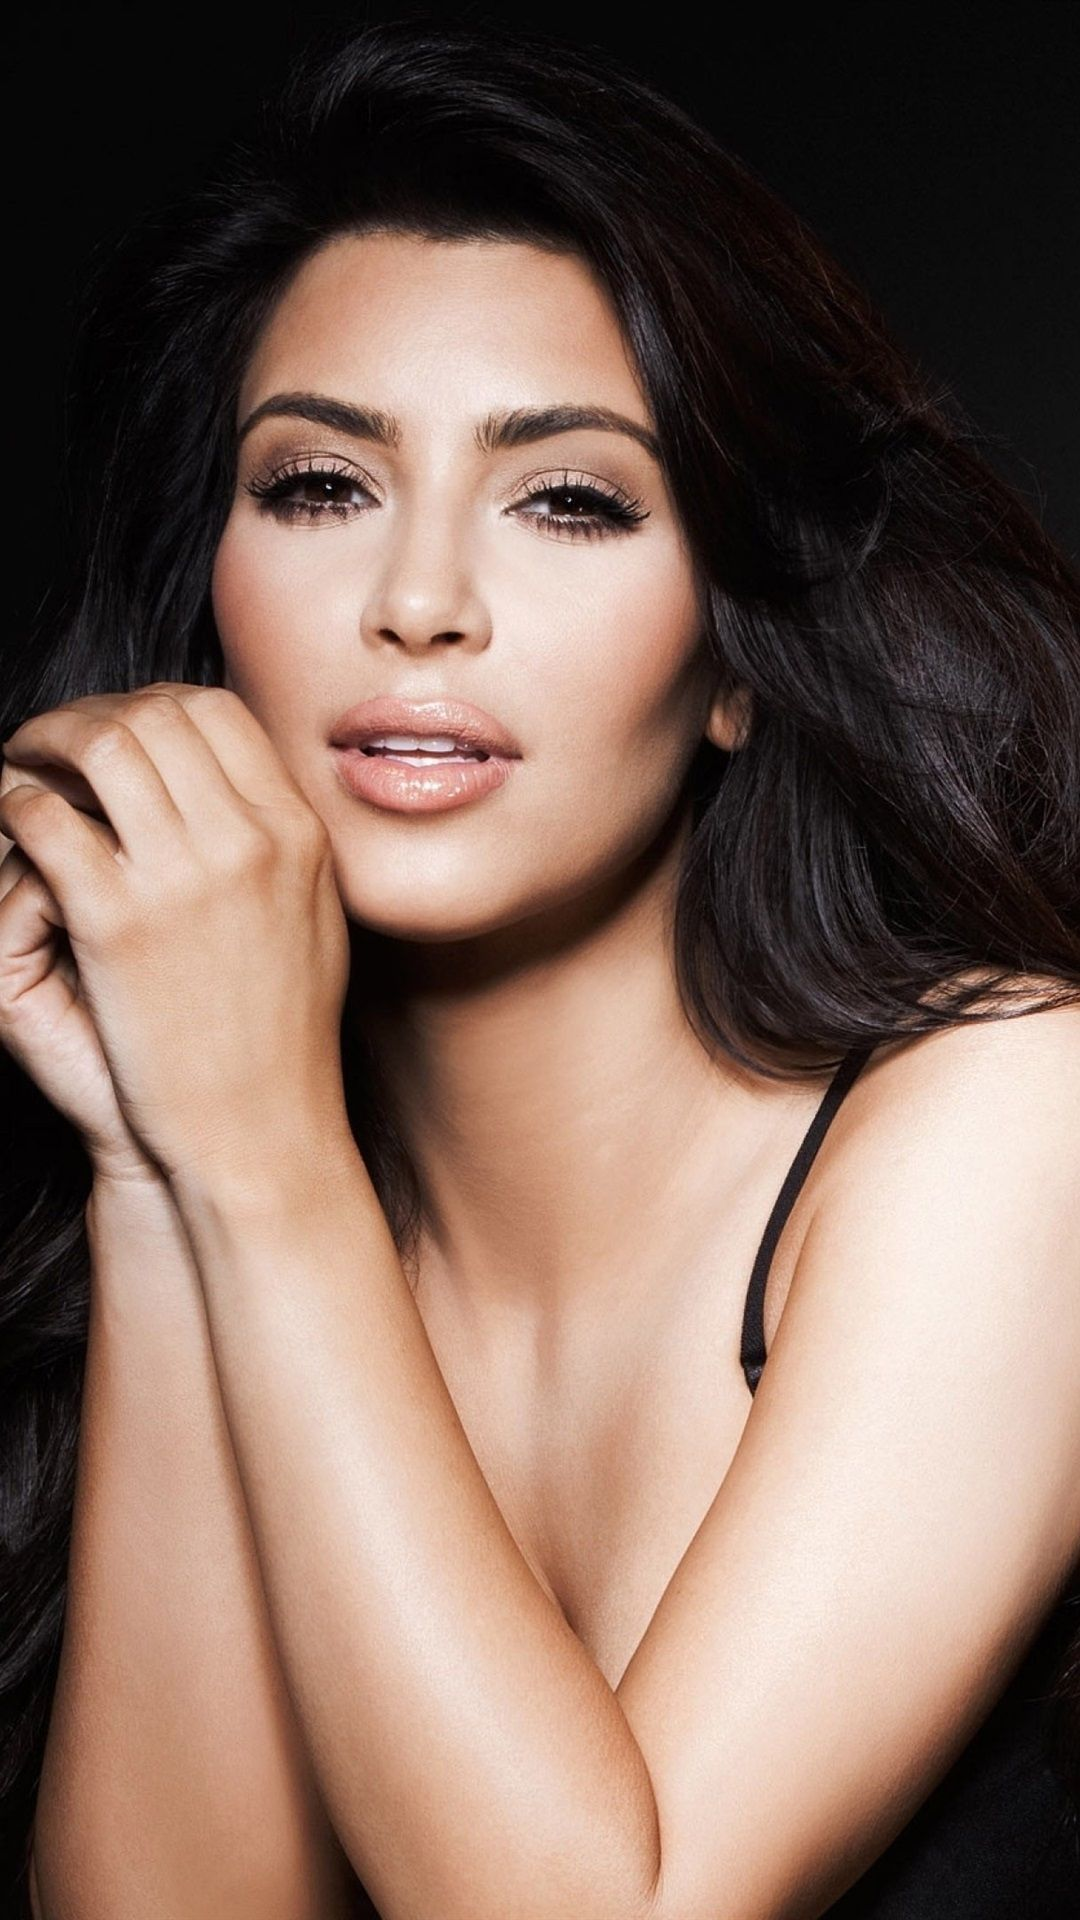 Kim Kardashian Wallpaper Iphone